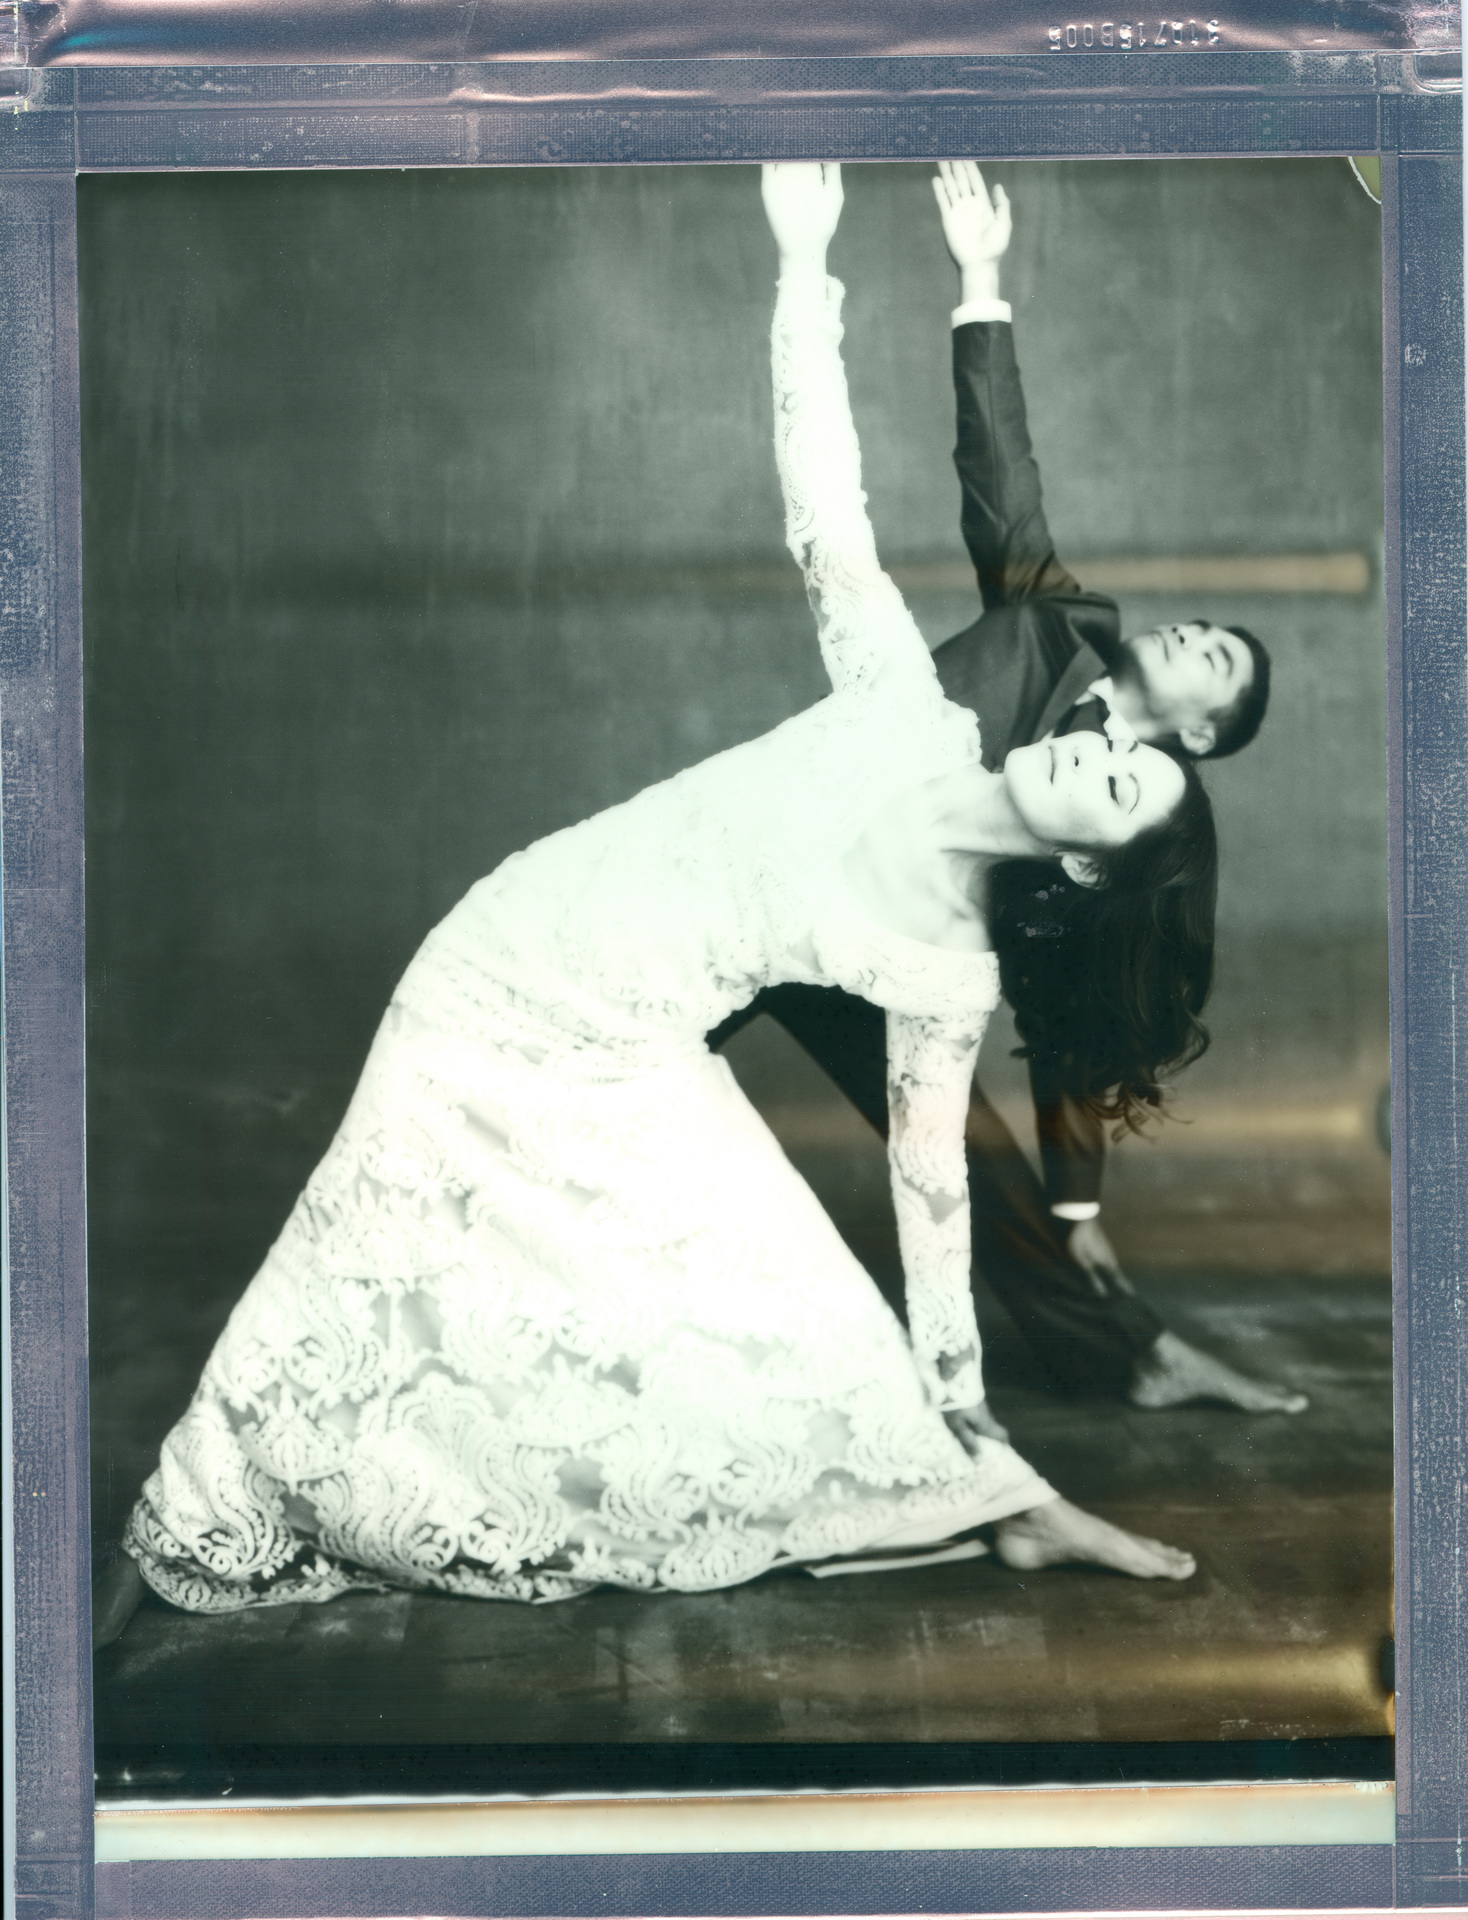 yoga couple wedding 8 x 10 polaroid impossible project triangle pose